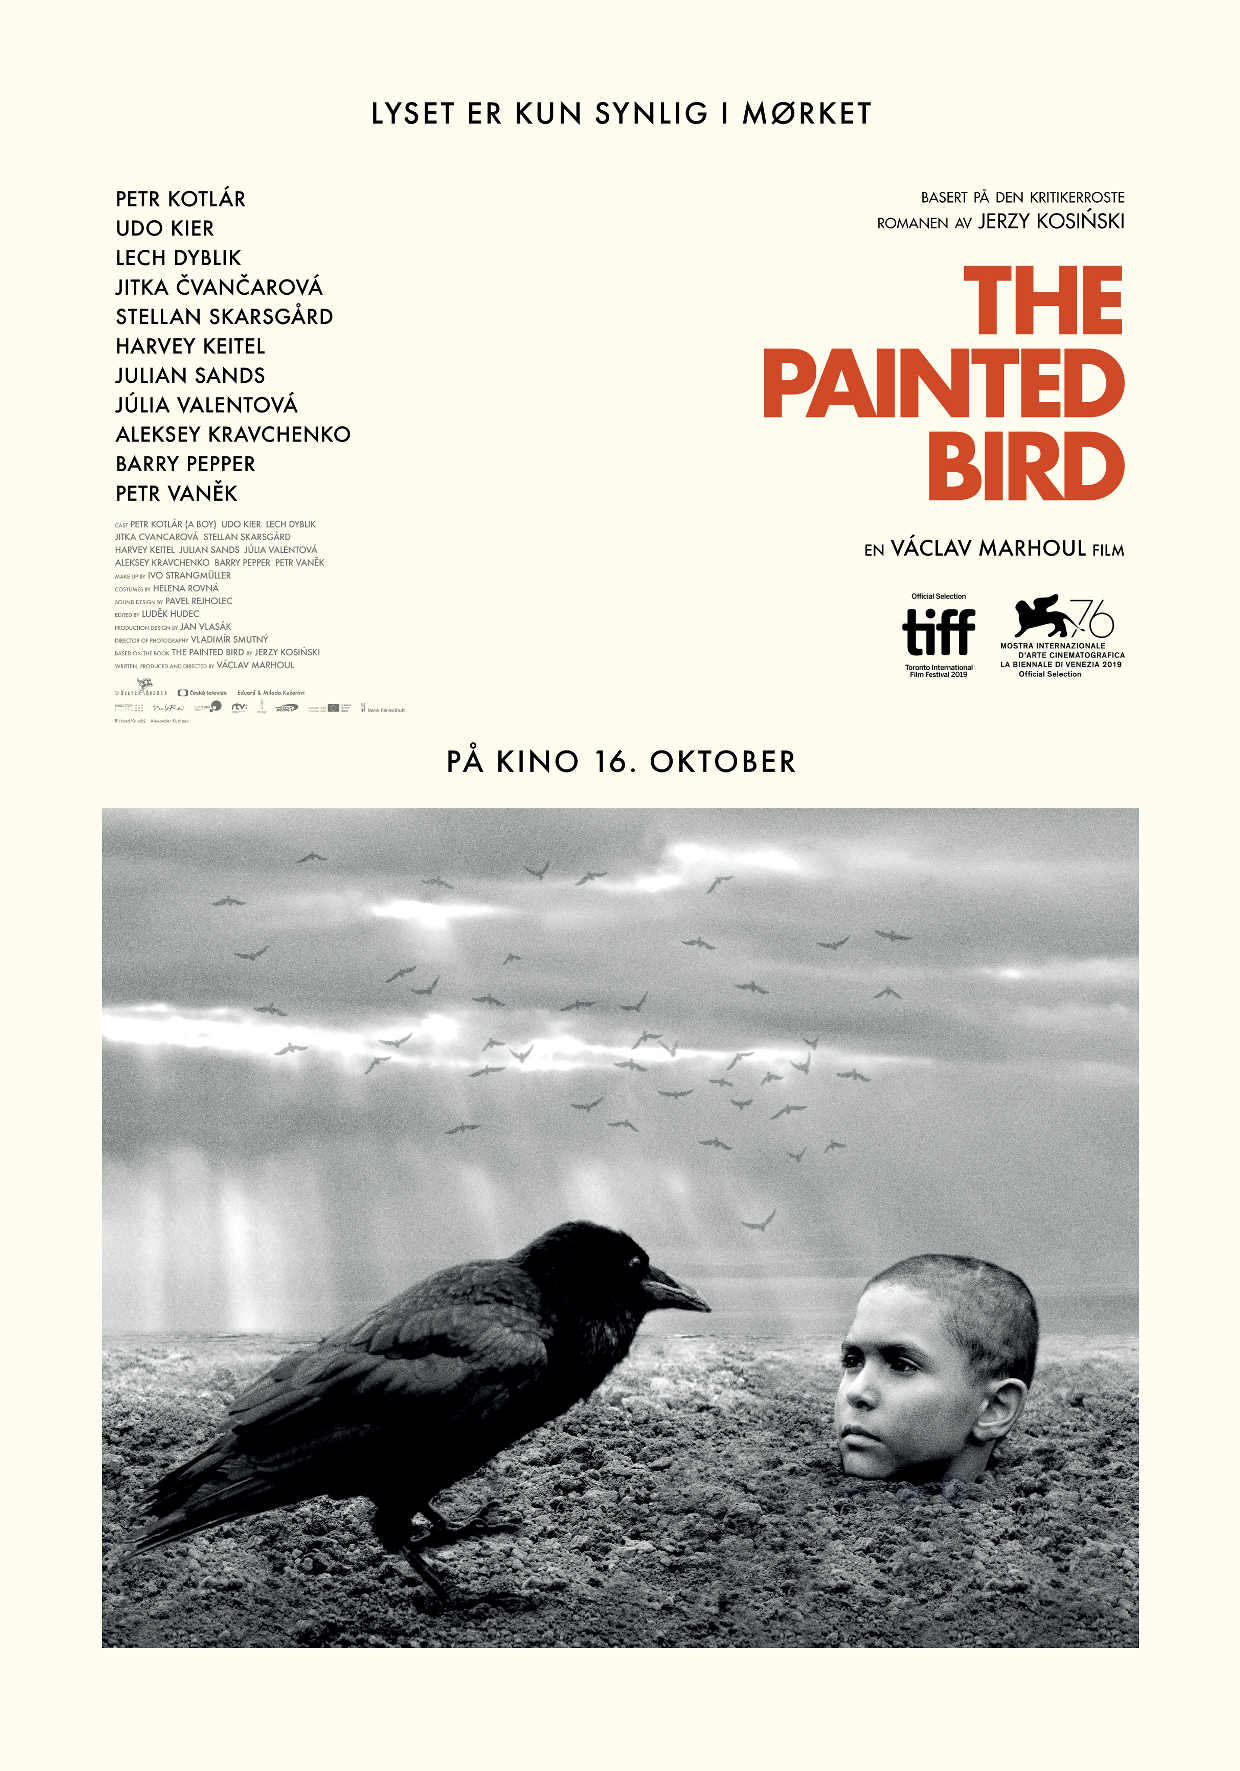 THE PAINTED BIRD NO POSTER A4.jpg